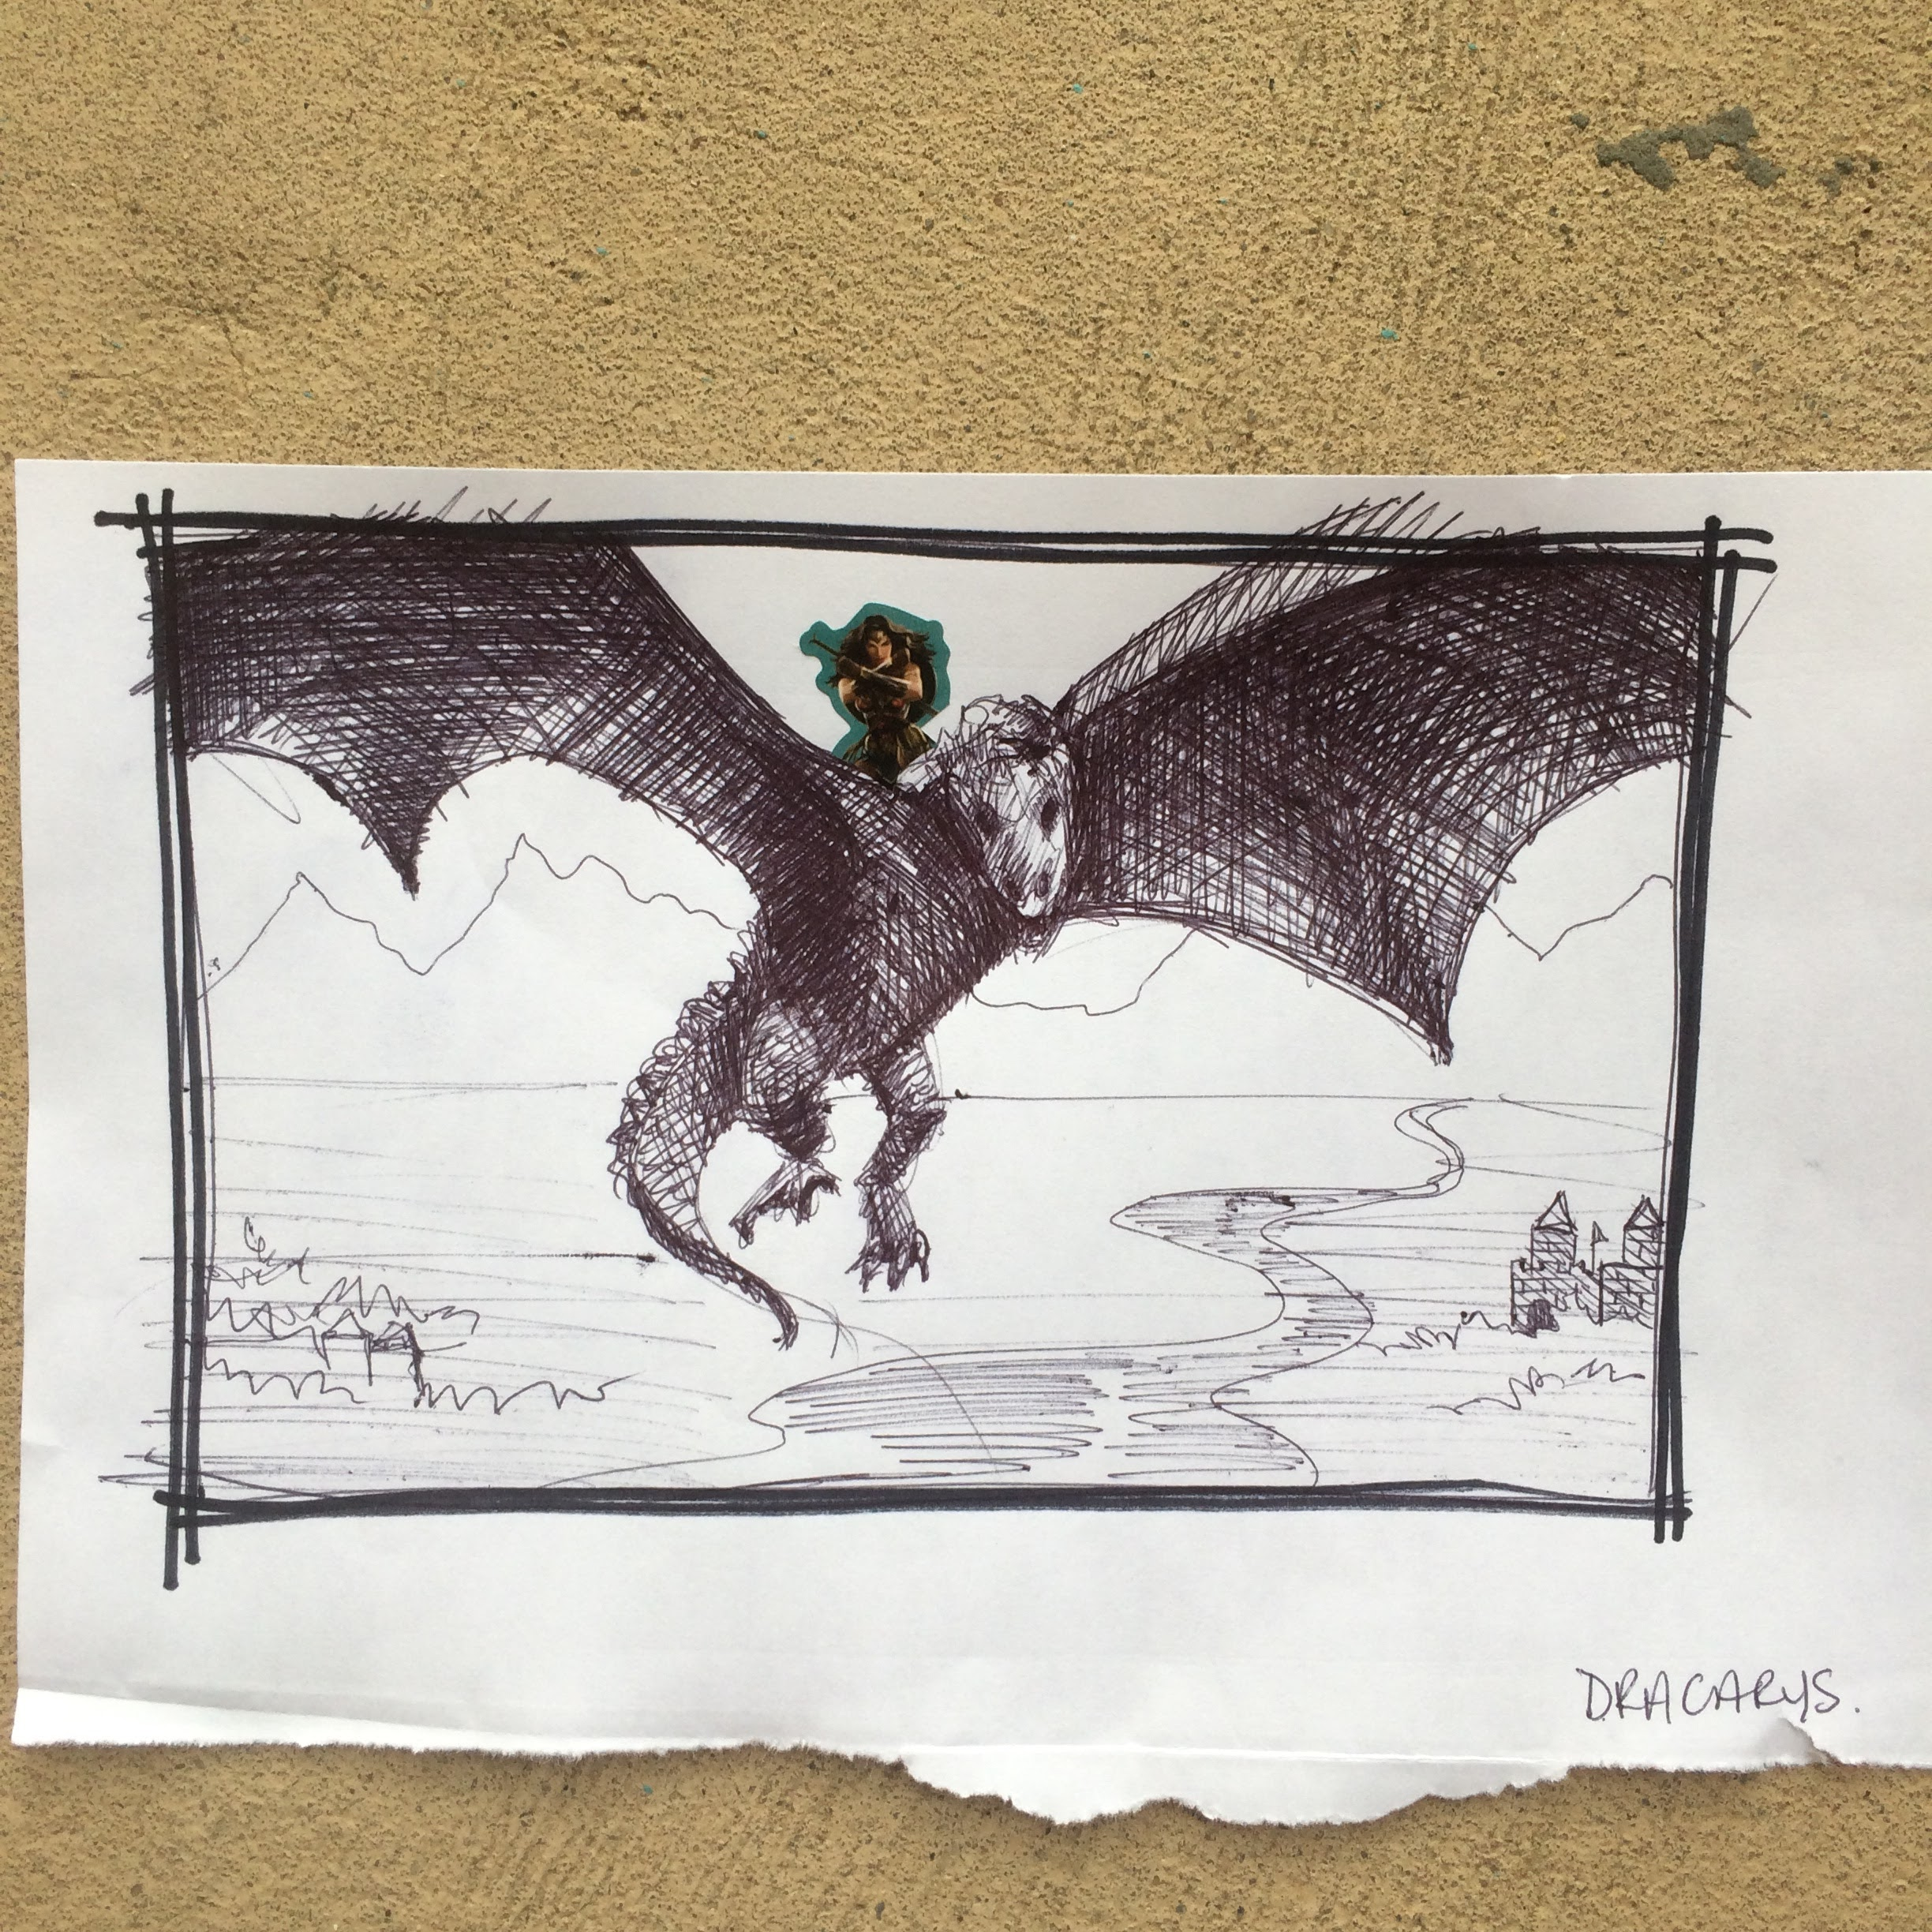 58. September 20, 2017 - DRACARYS